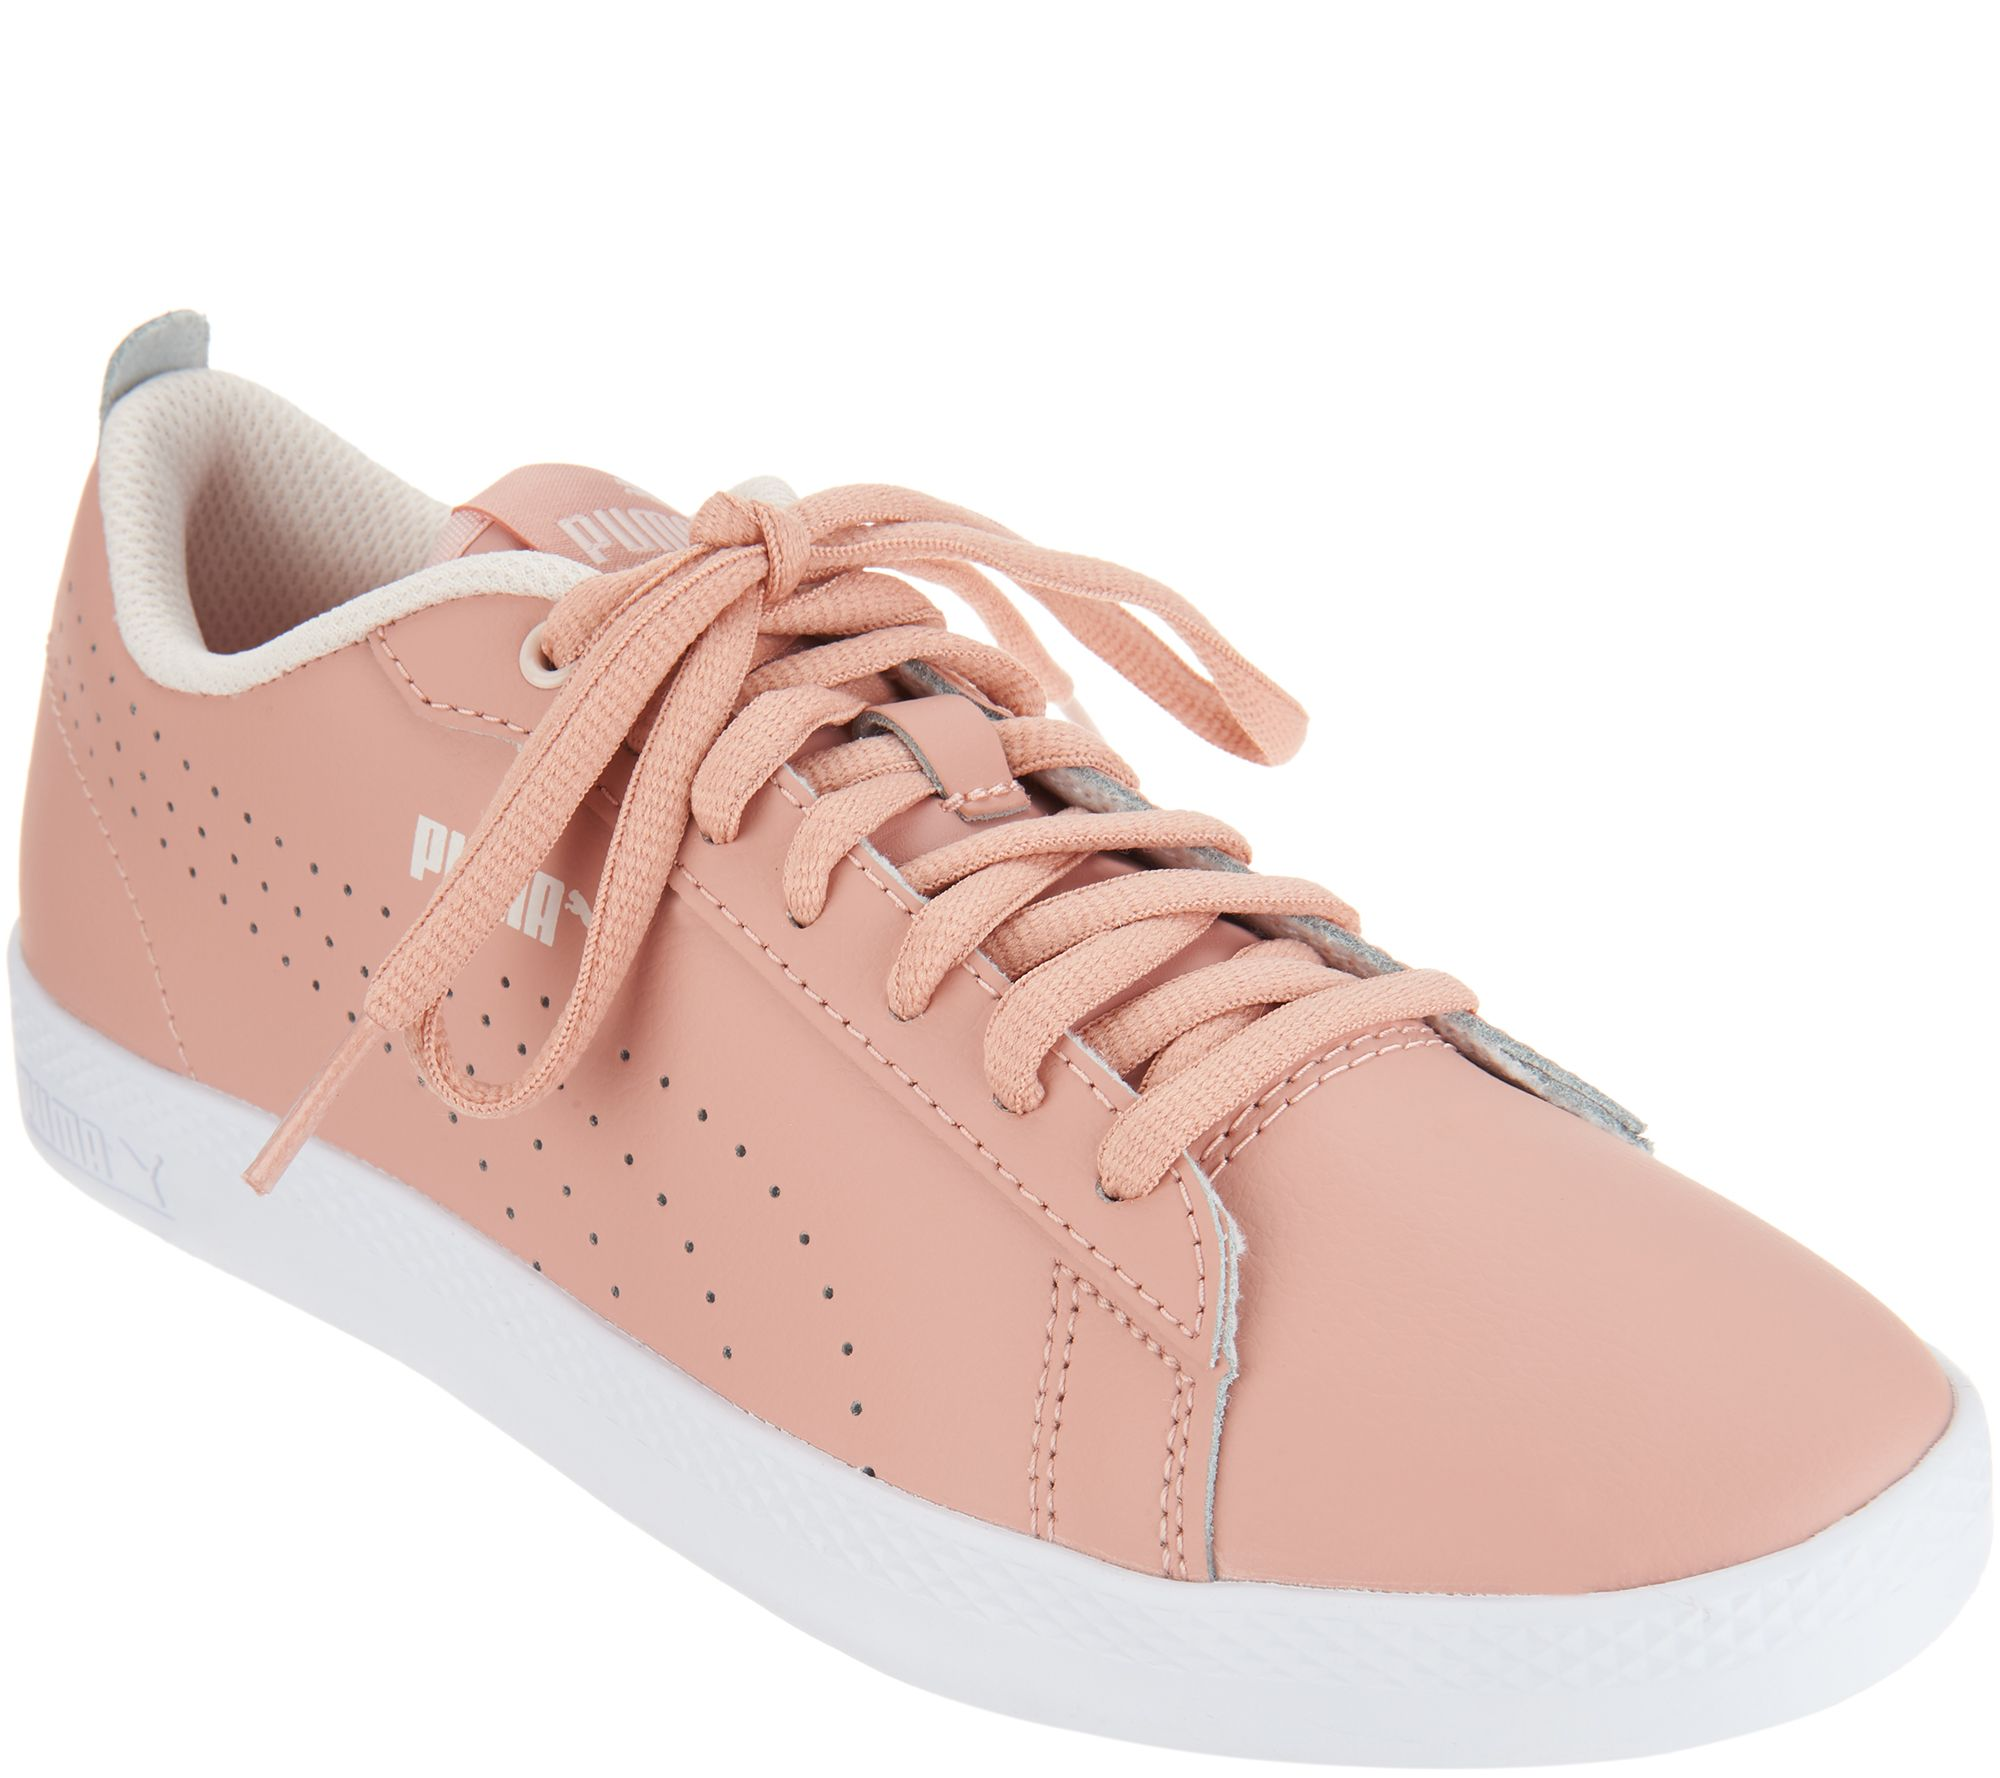 Puma Leather Court Sneakers - Smash Perf - Page 1 — QVC.com 37acabda3